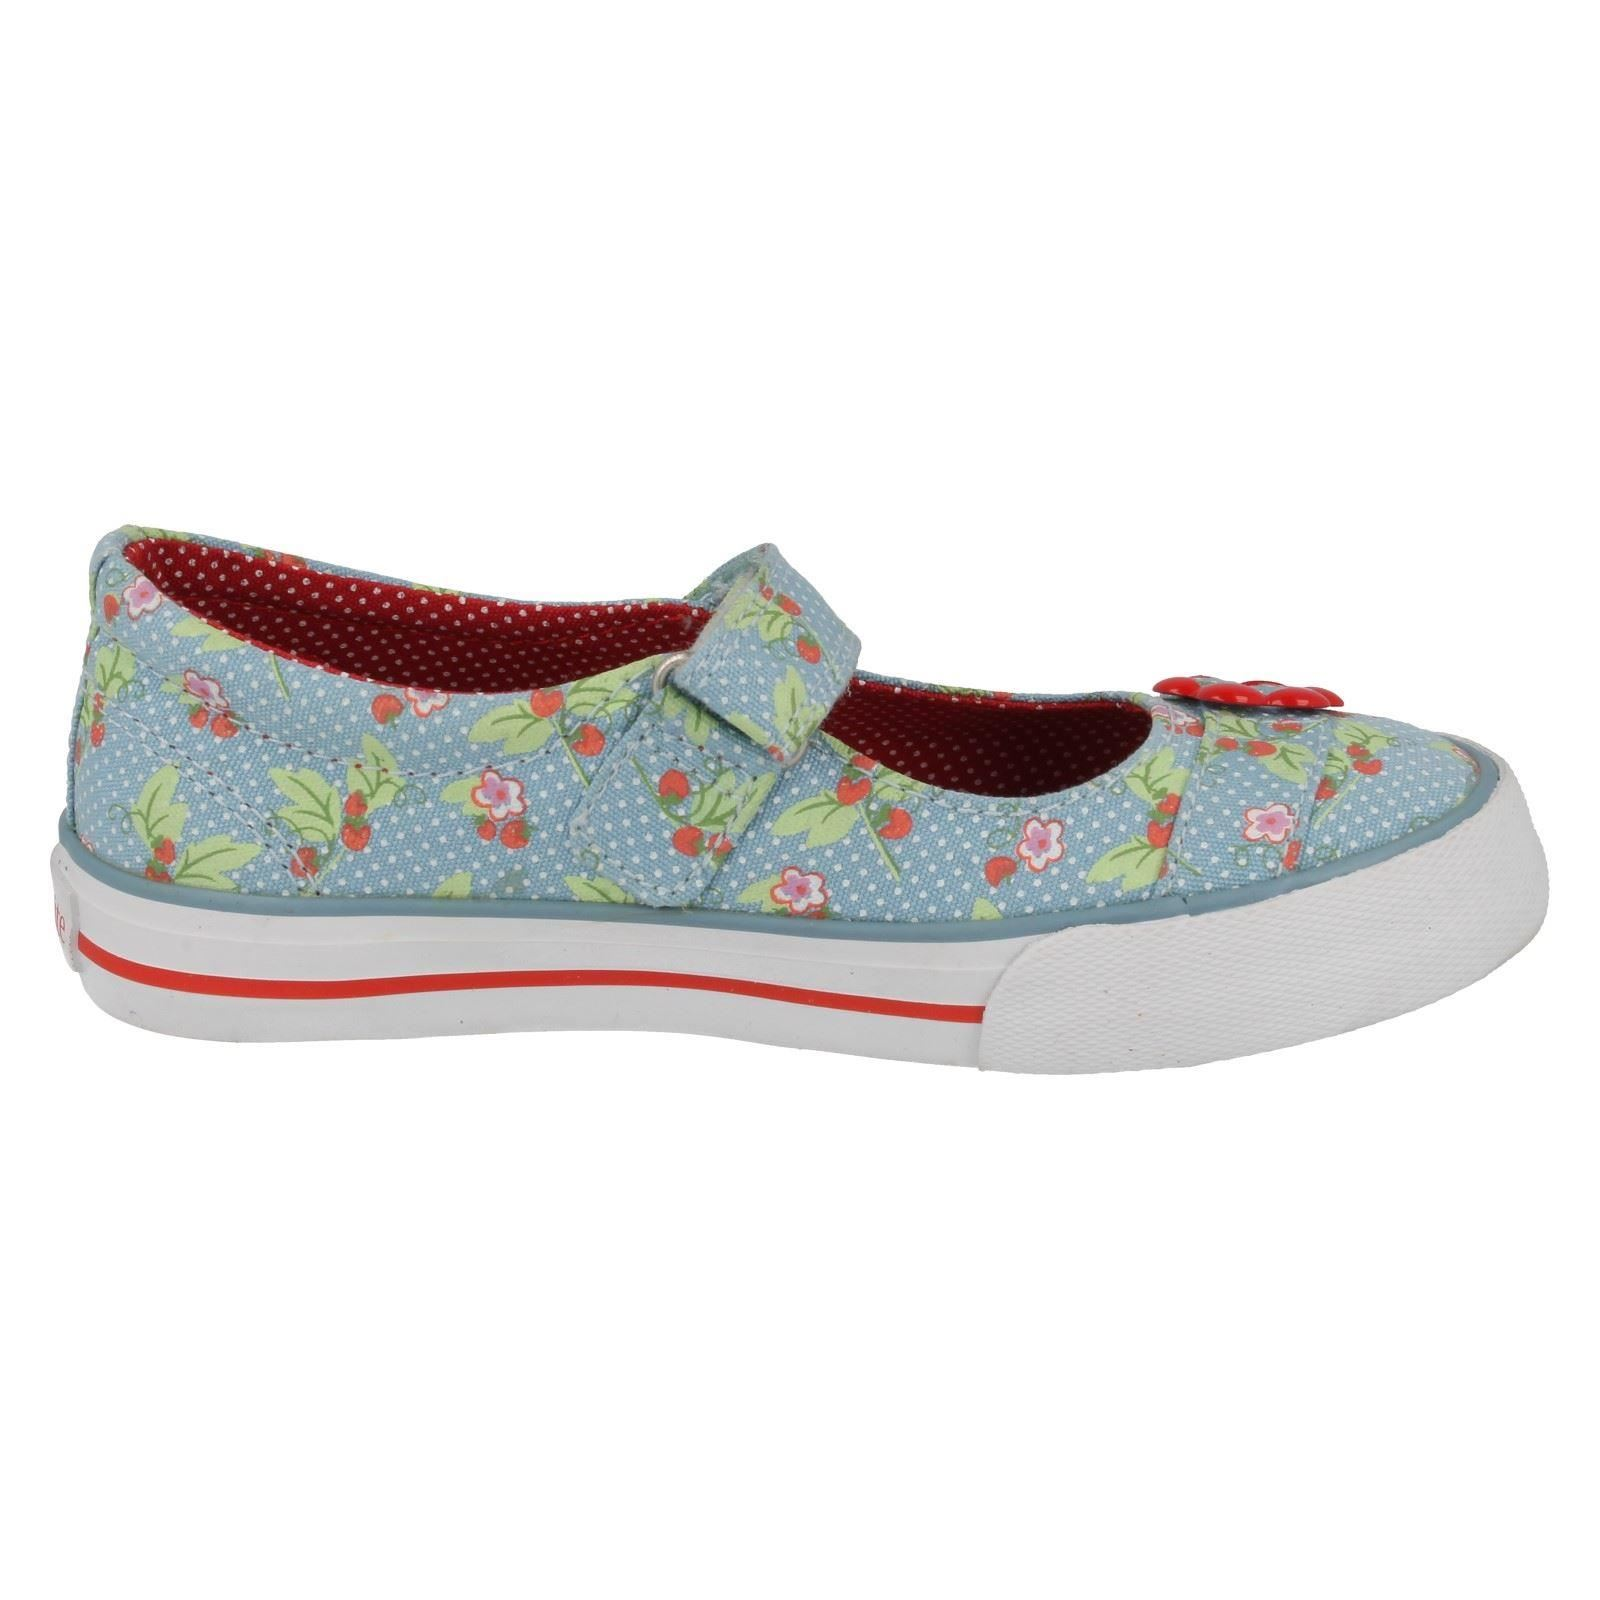 startrite summer canvas shoes strawberry jam